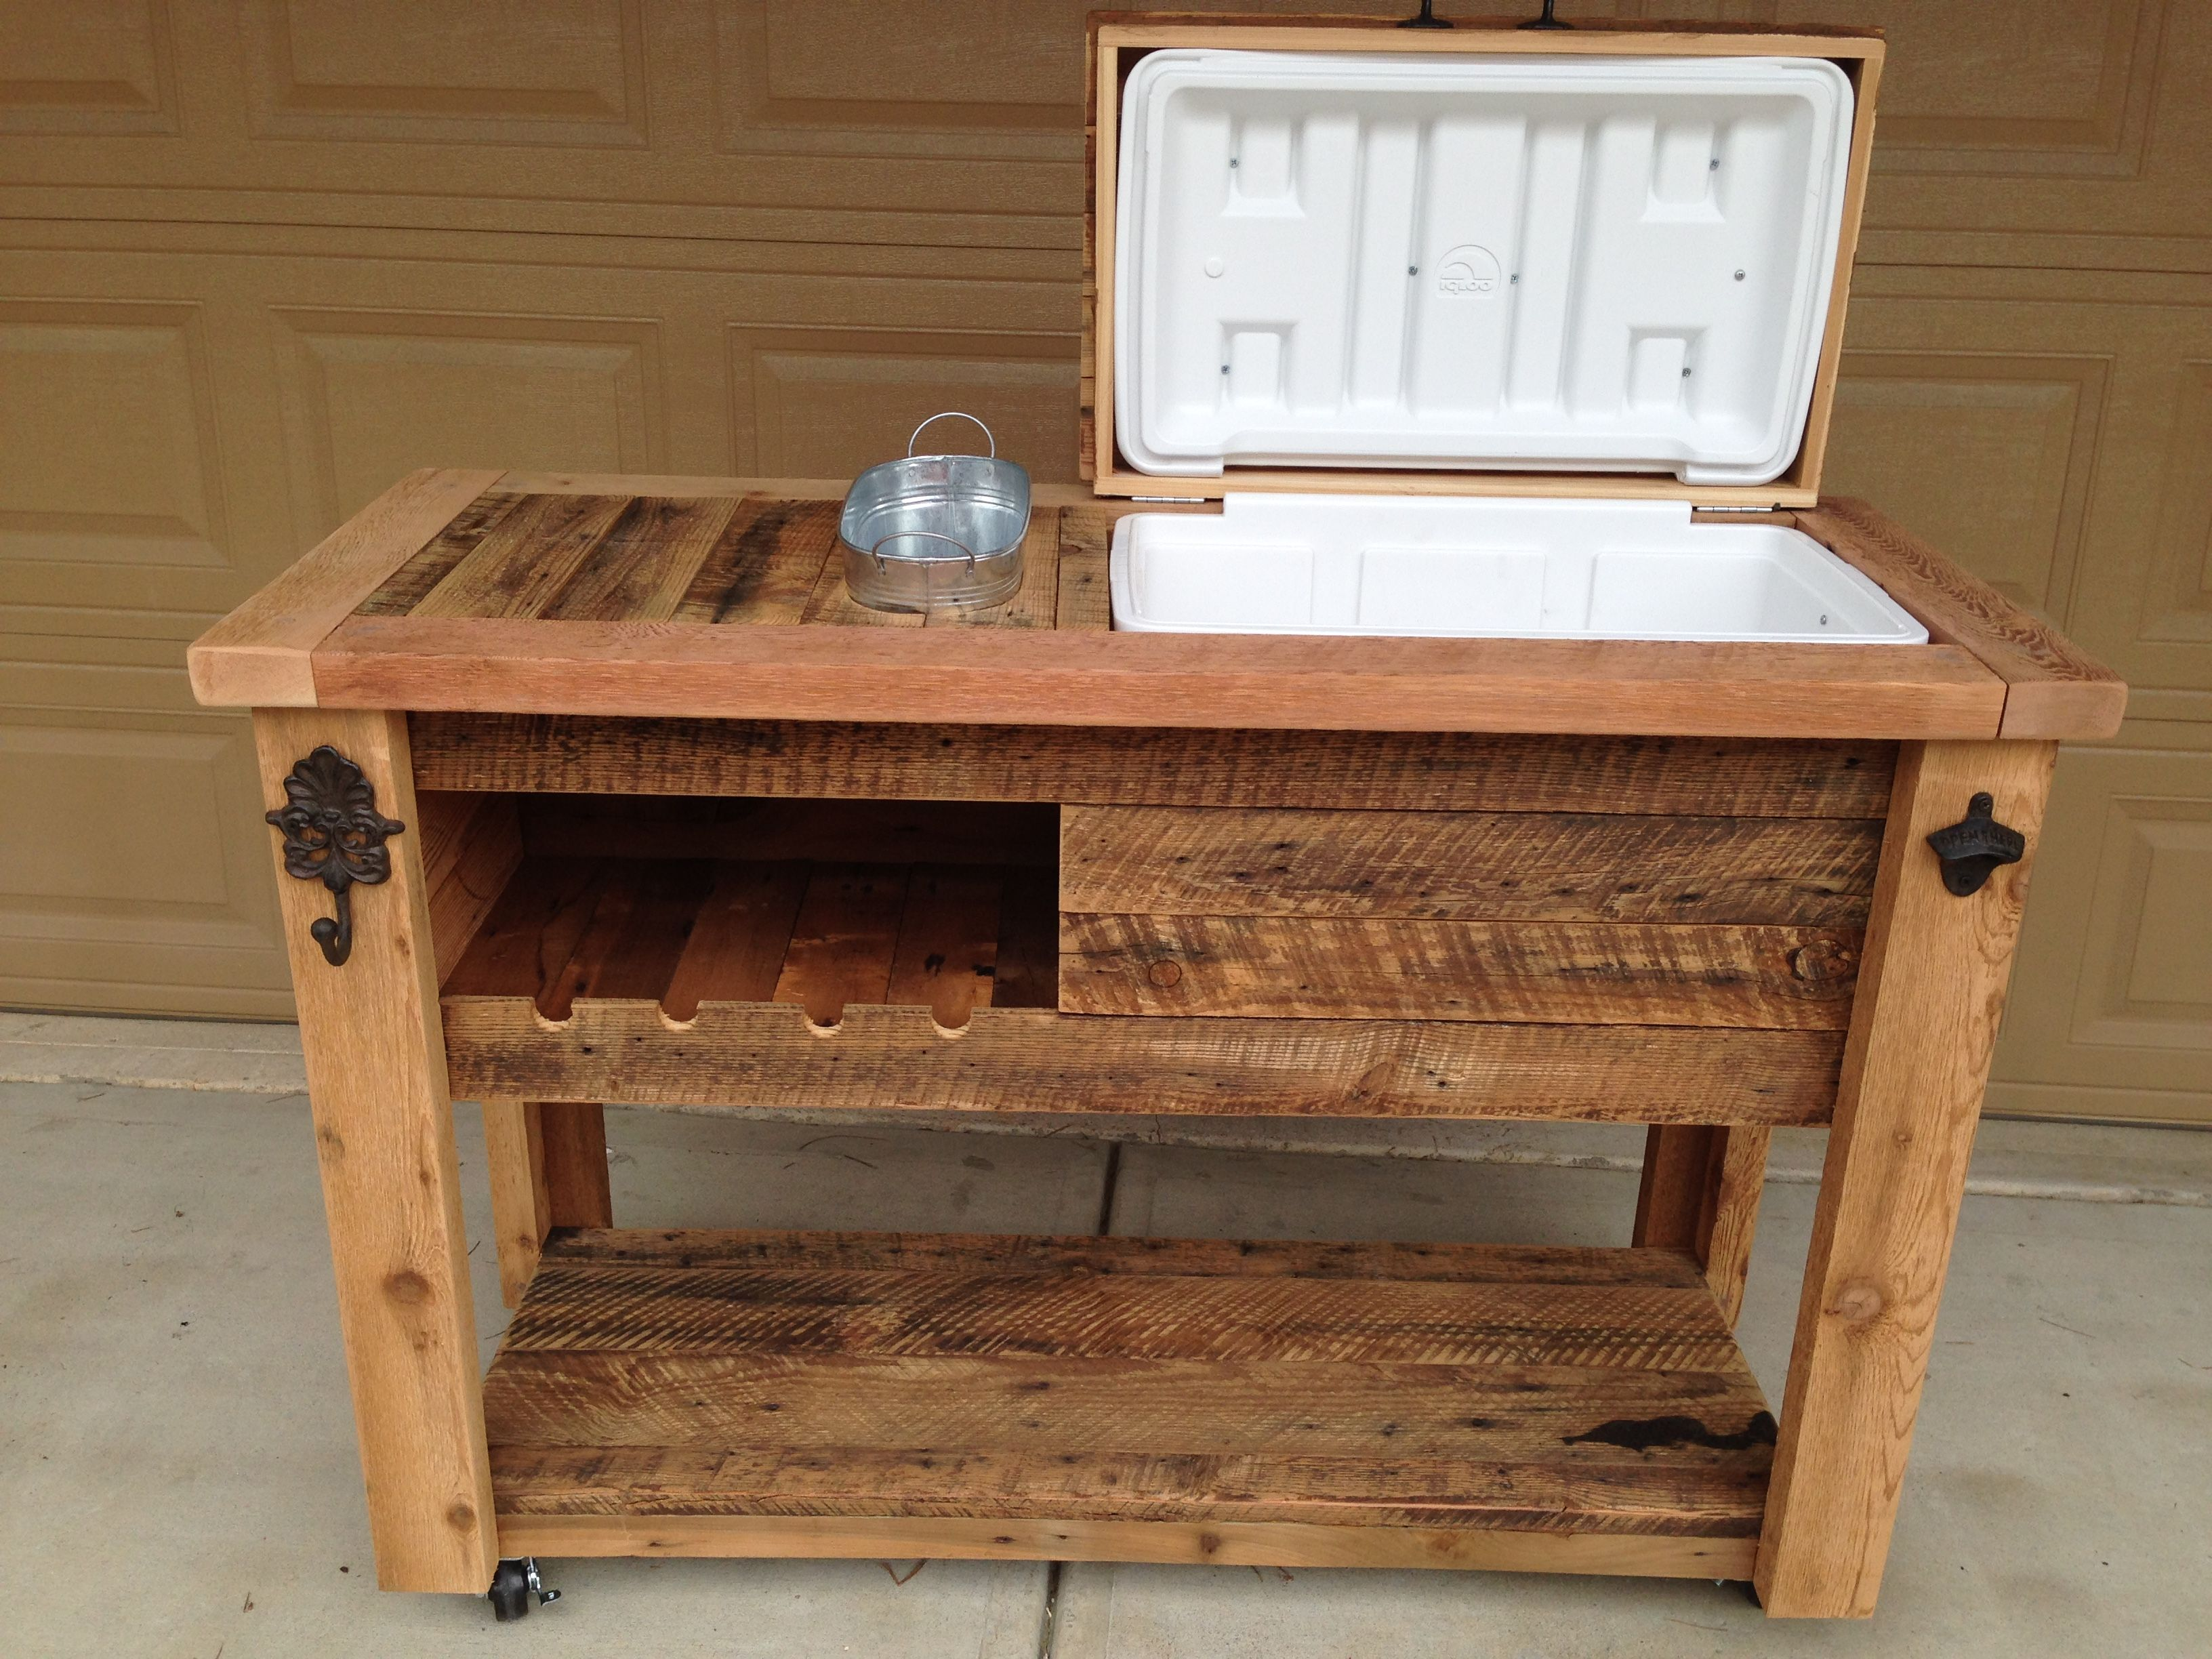 Amazing BARN WOOD COOLER TABLE Approximate Product Dimensions: 51W X 20D X 36H  Approximate Weight: